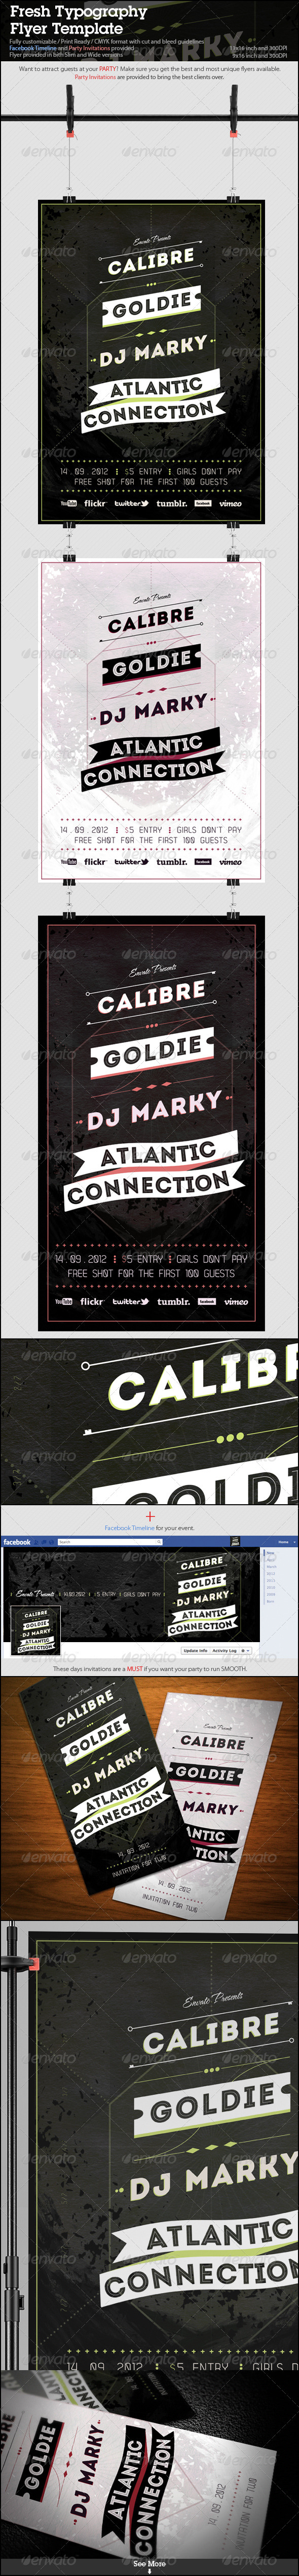 GraphicRiver Fresh Typography Flyer Template 2792600